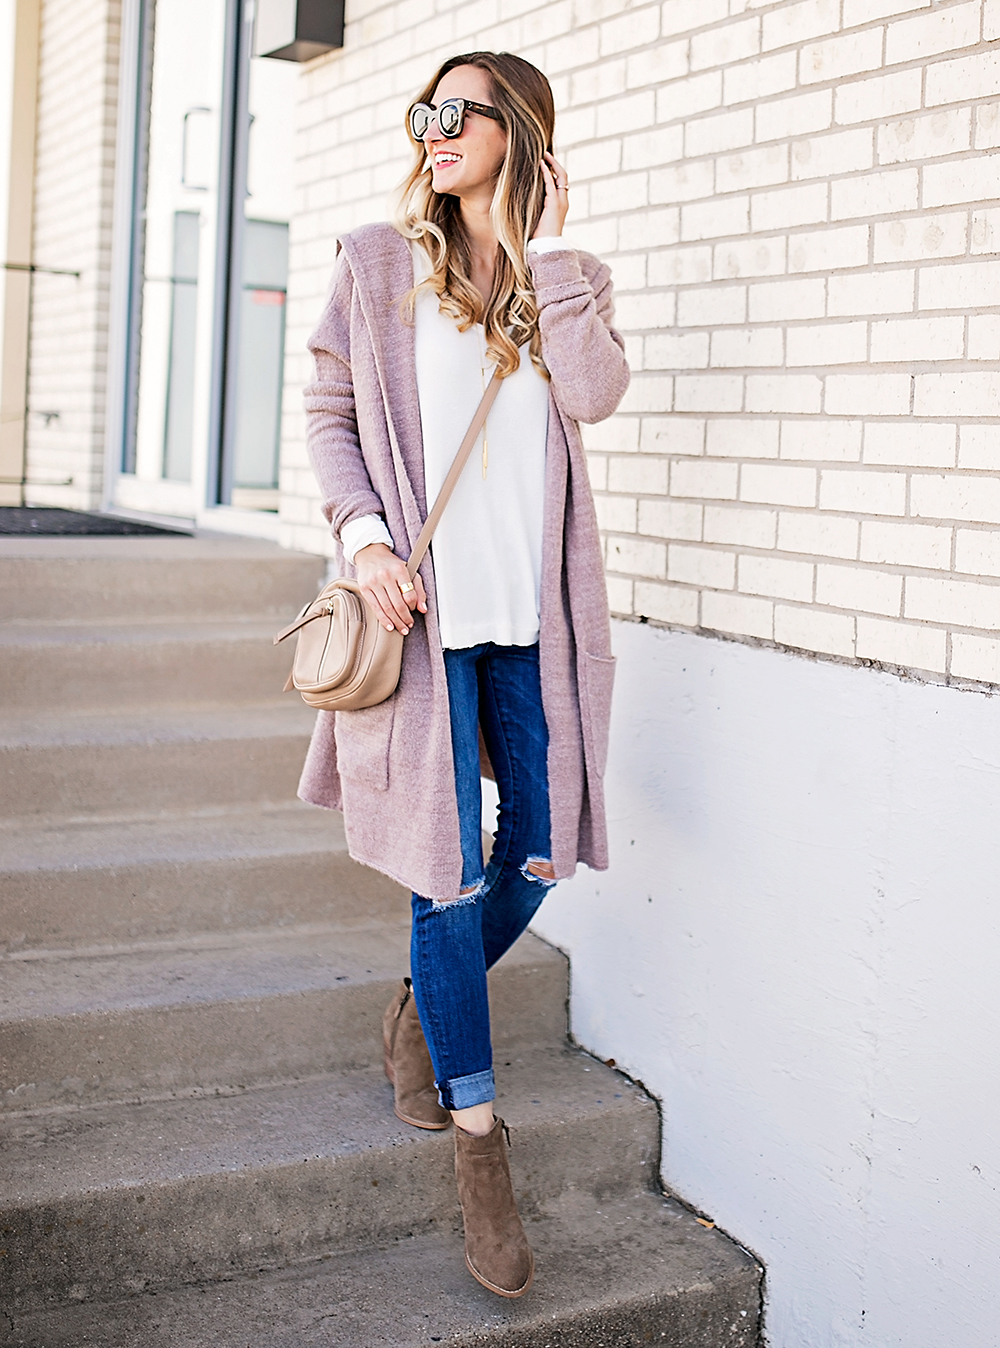 livvyland-blog-olivia-watson-blush-pink-dusty-rose-cardigan-sweater-free-people-thermal-top-cozy-light-layers-nordstrom-fall-outfit-4